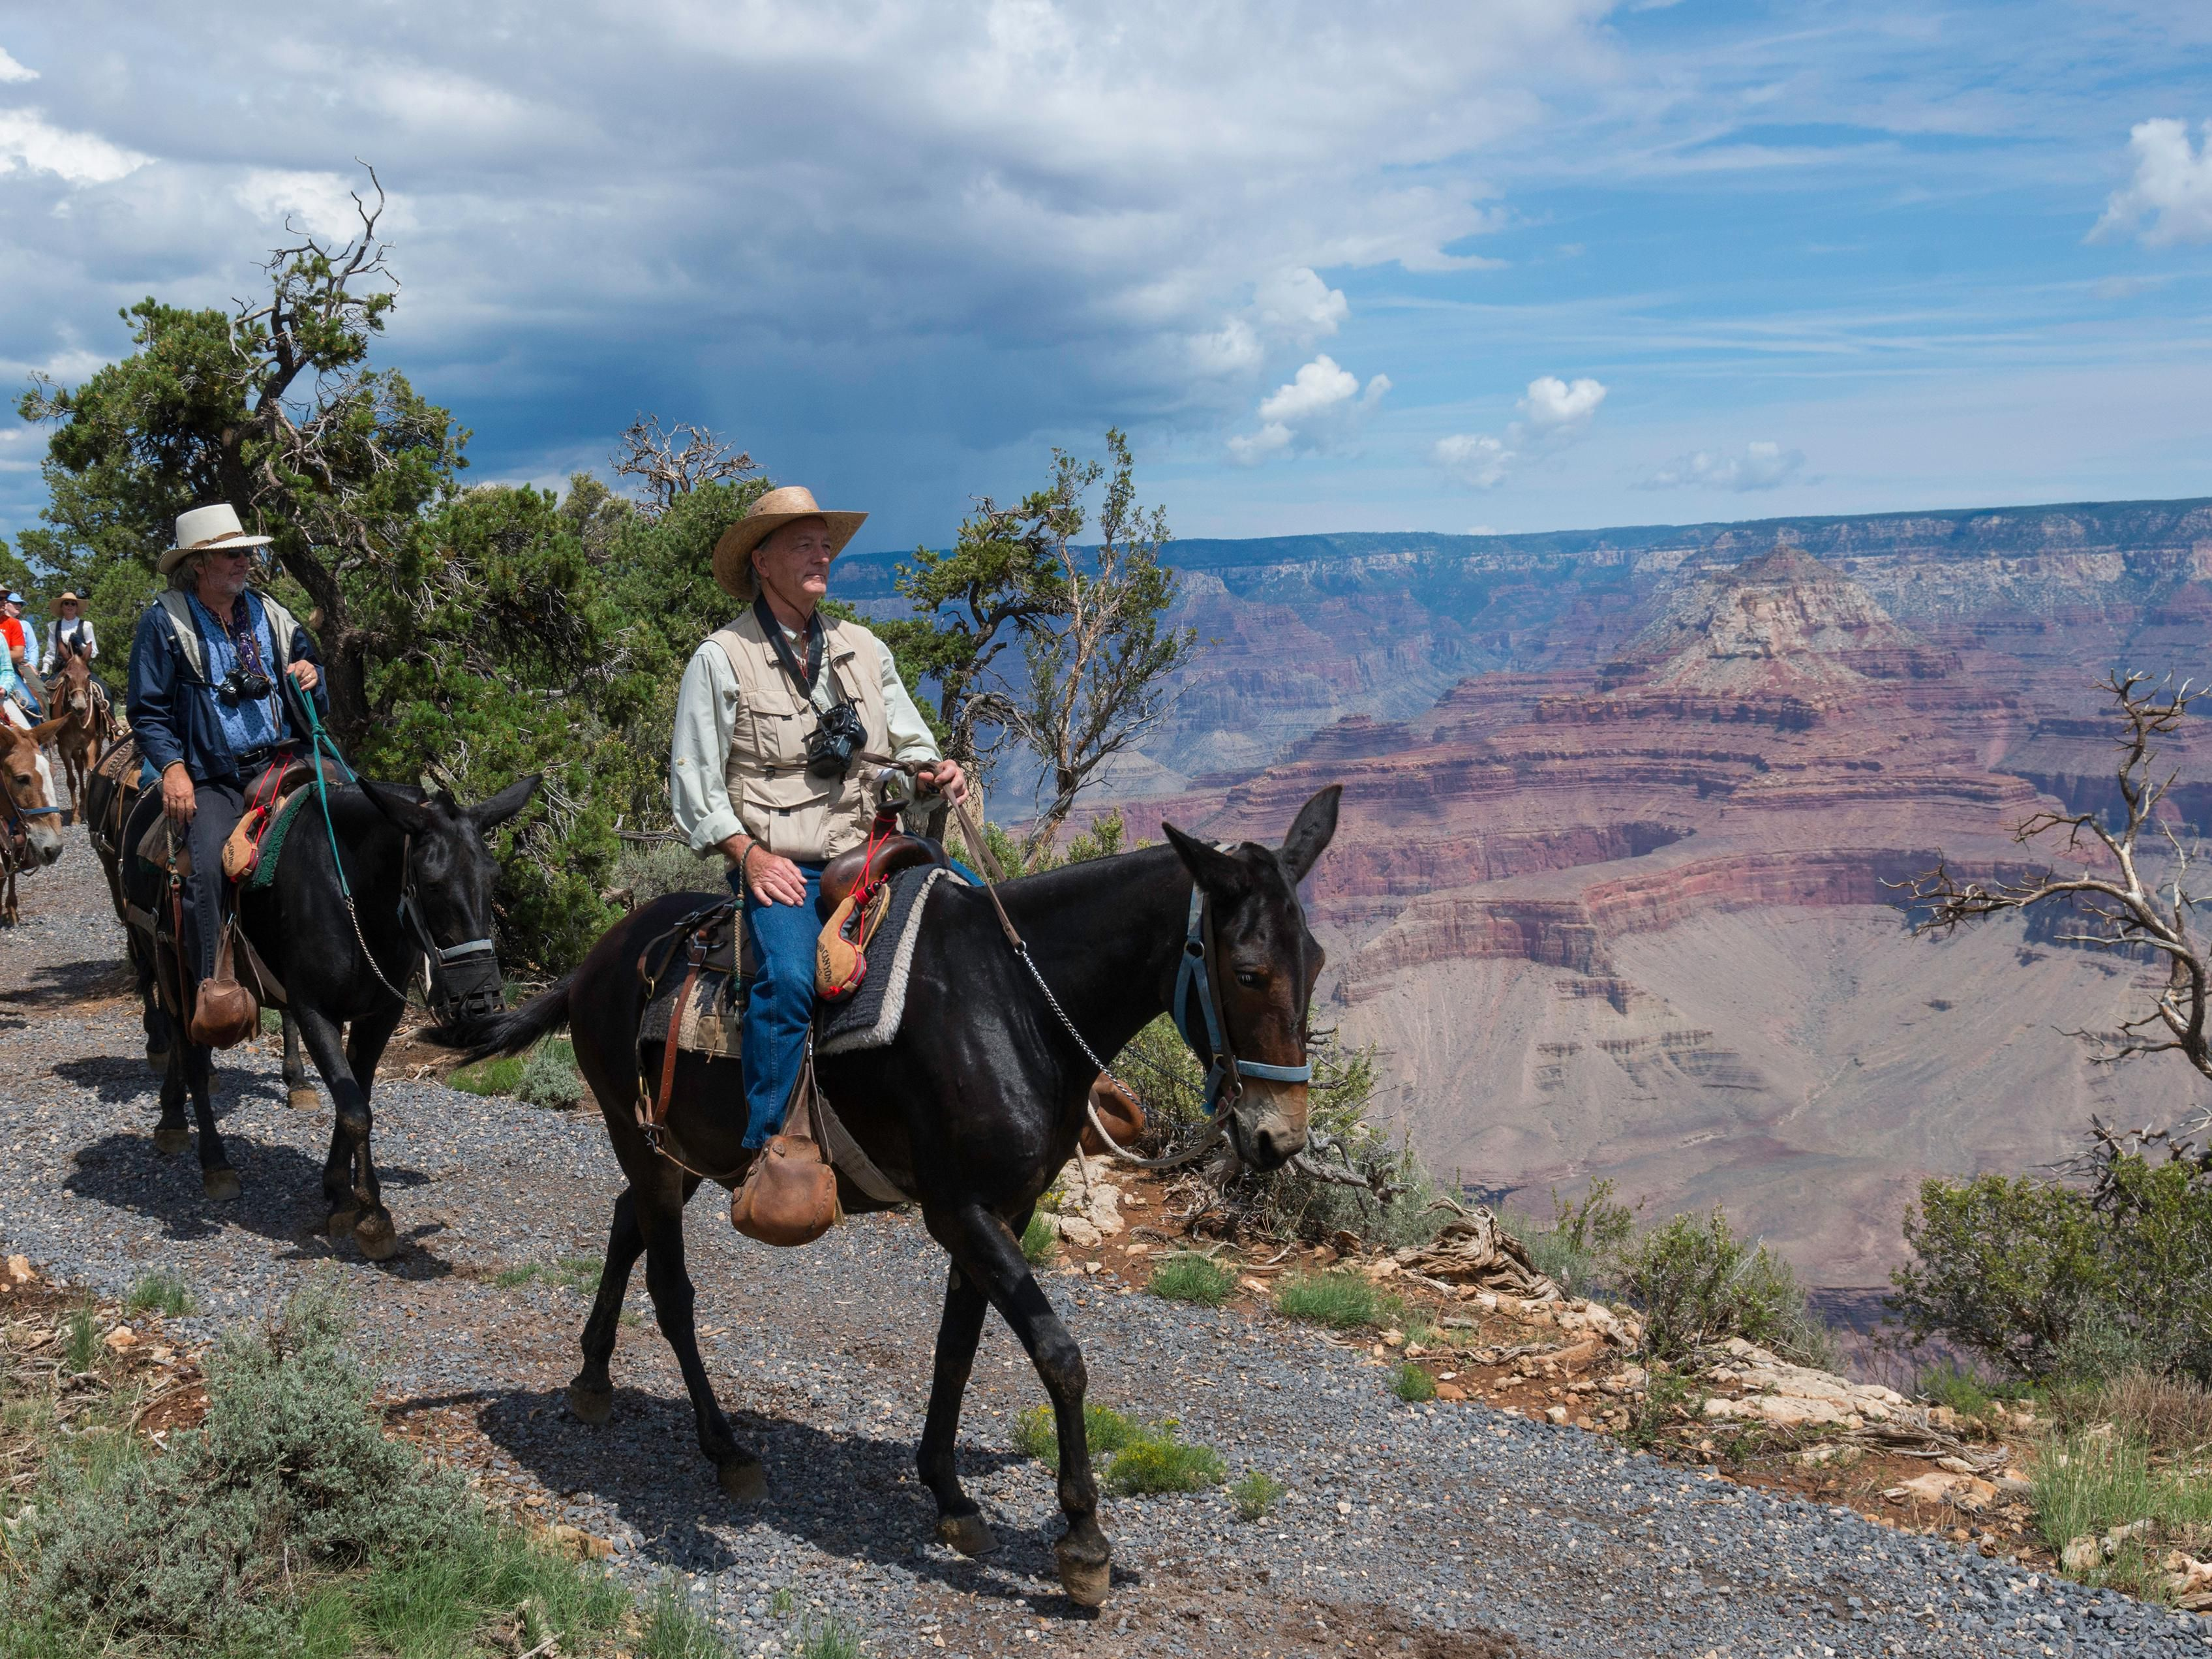 Take a mule ride down into the Grand Canyon or along the rim